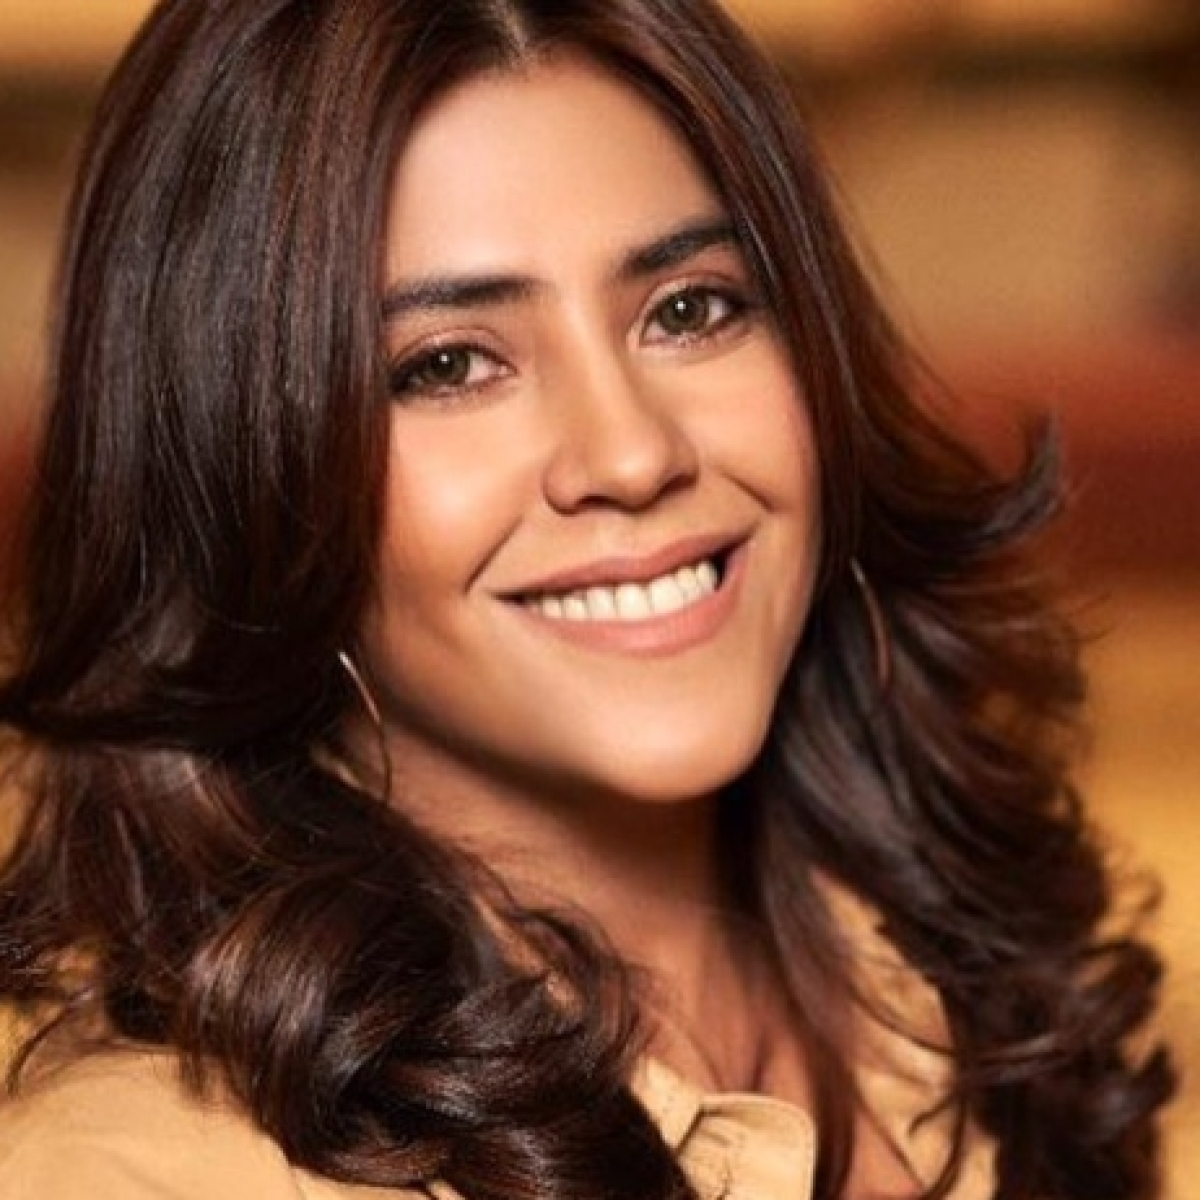 Ekta Kapoor to forsake her salary of Rs 2.5 crore to help Balaji Telefilms co-workers